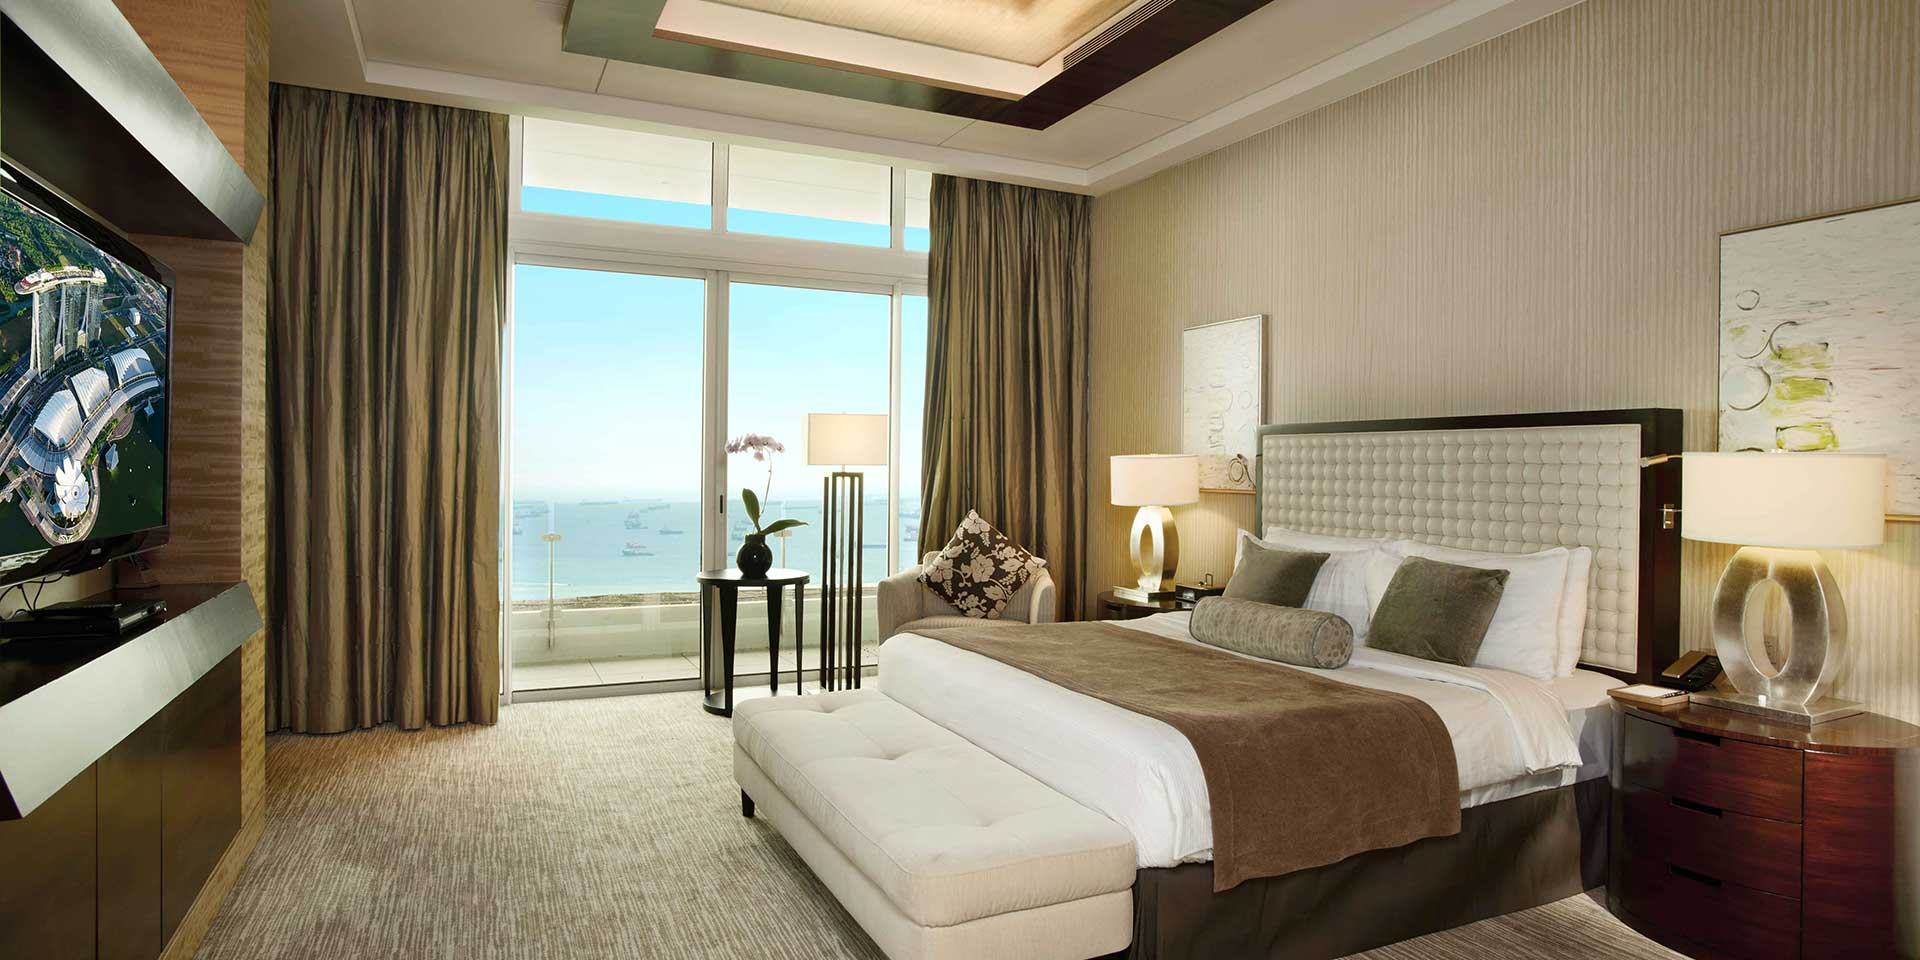 Marina Suite In Marina Bay Sands Singapore Hotel